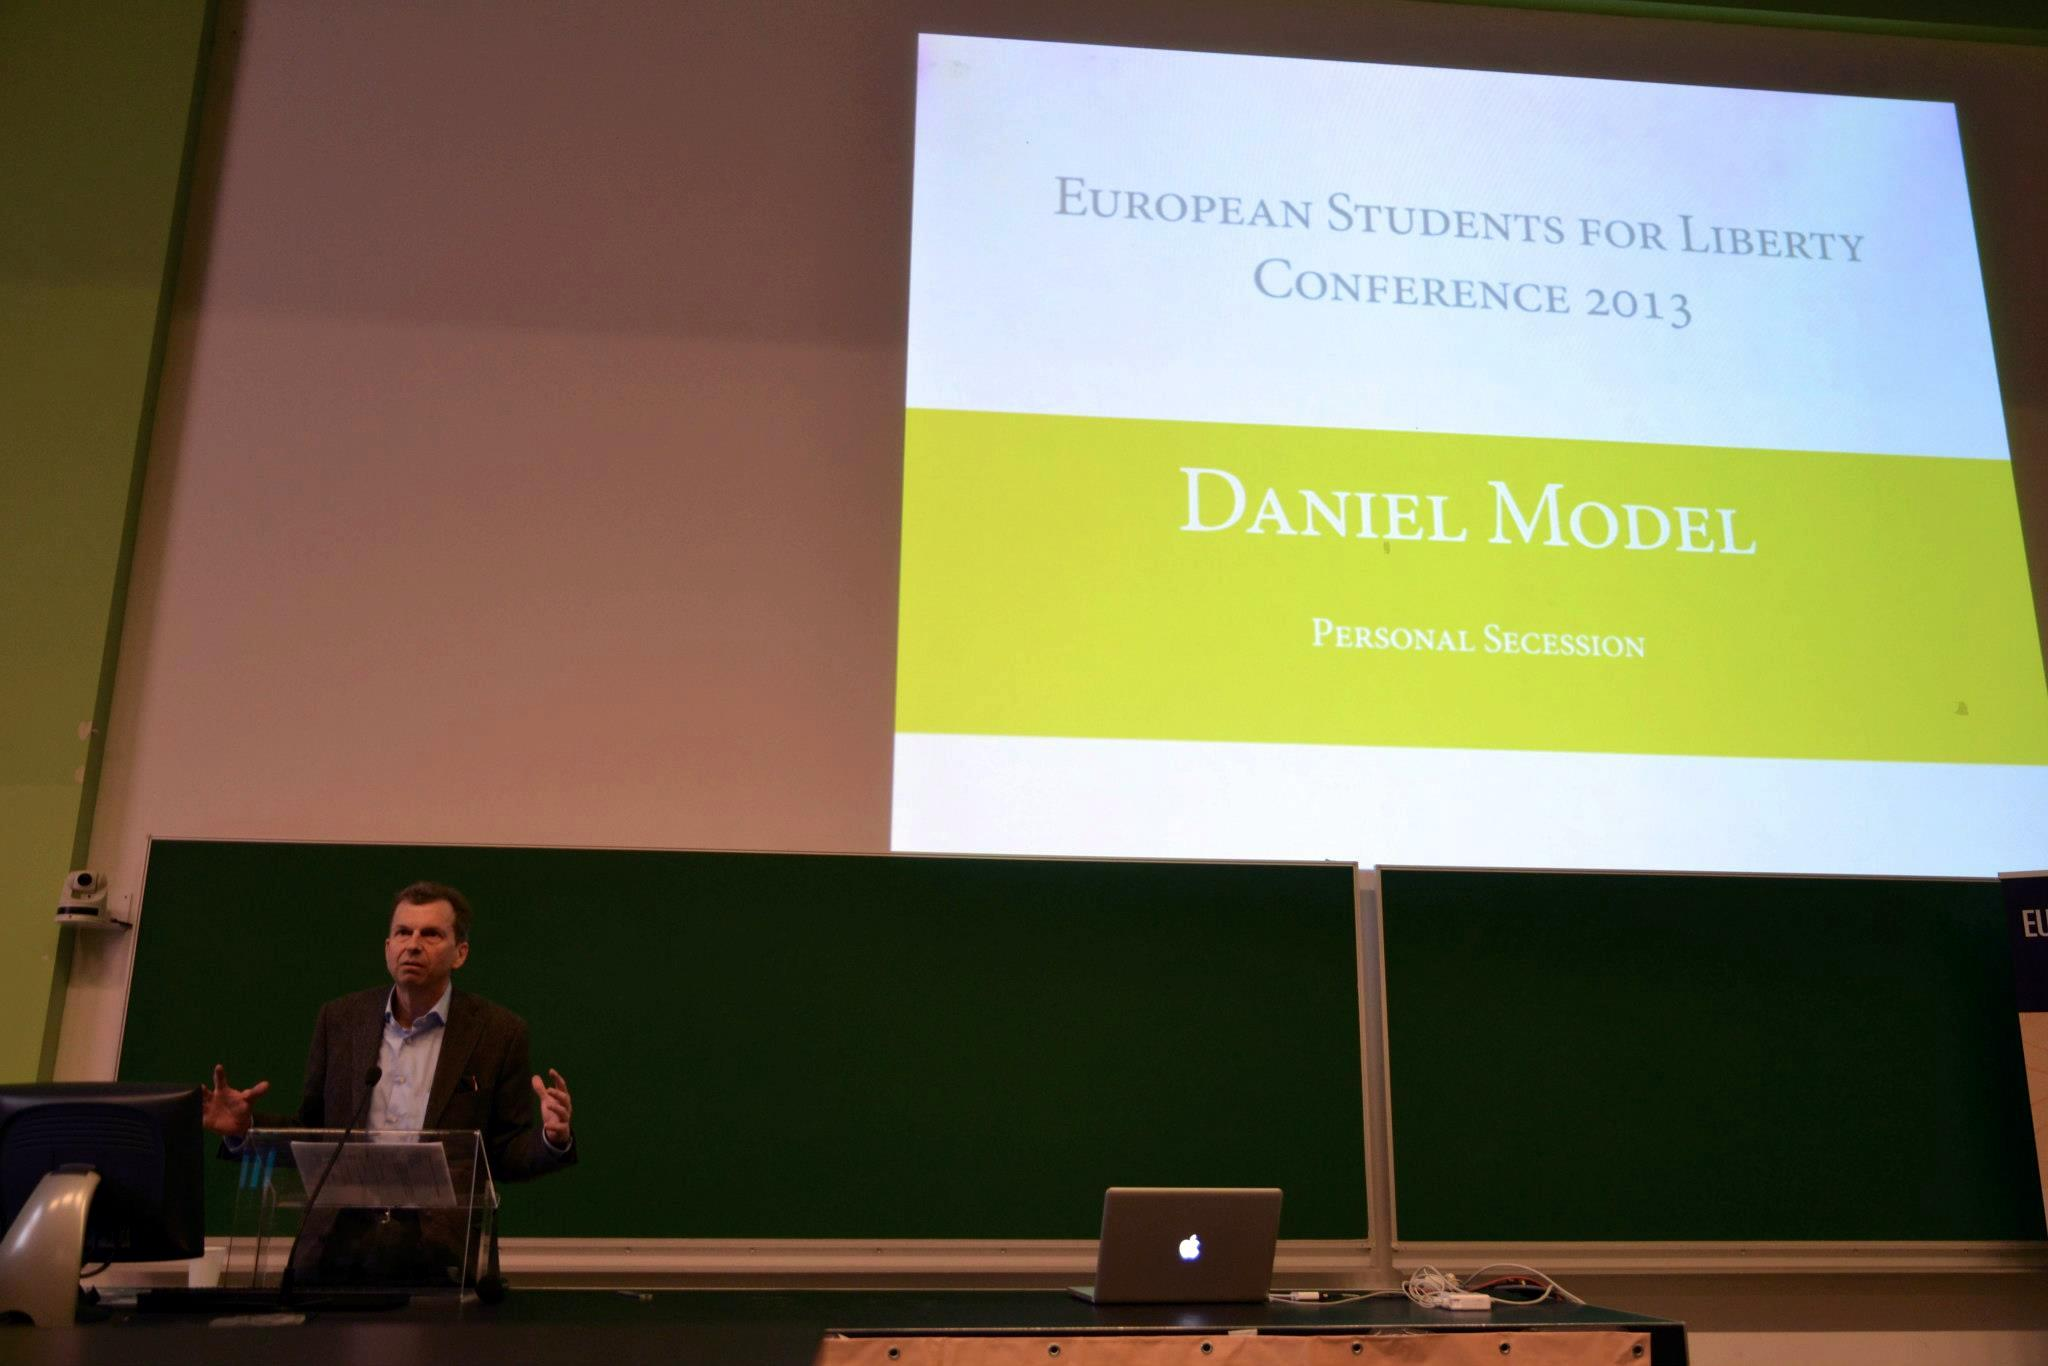 Swiss industrialist Daniel Model shares his own journey of personal secession.